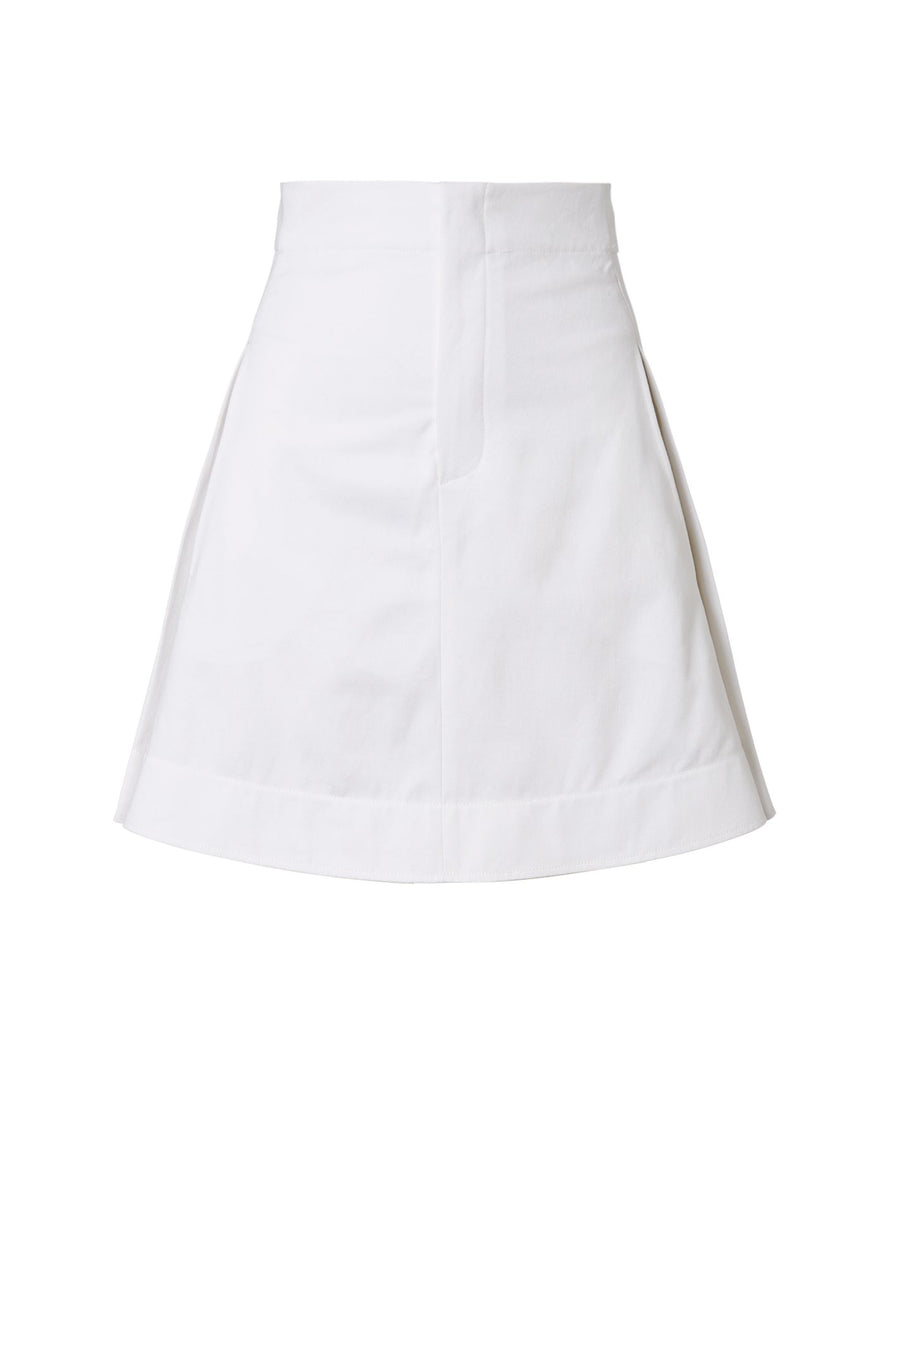 SAILOR SKIRT WHITE